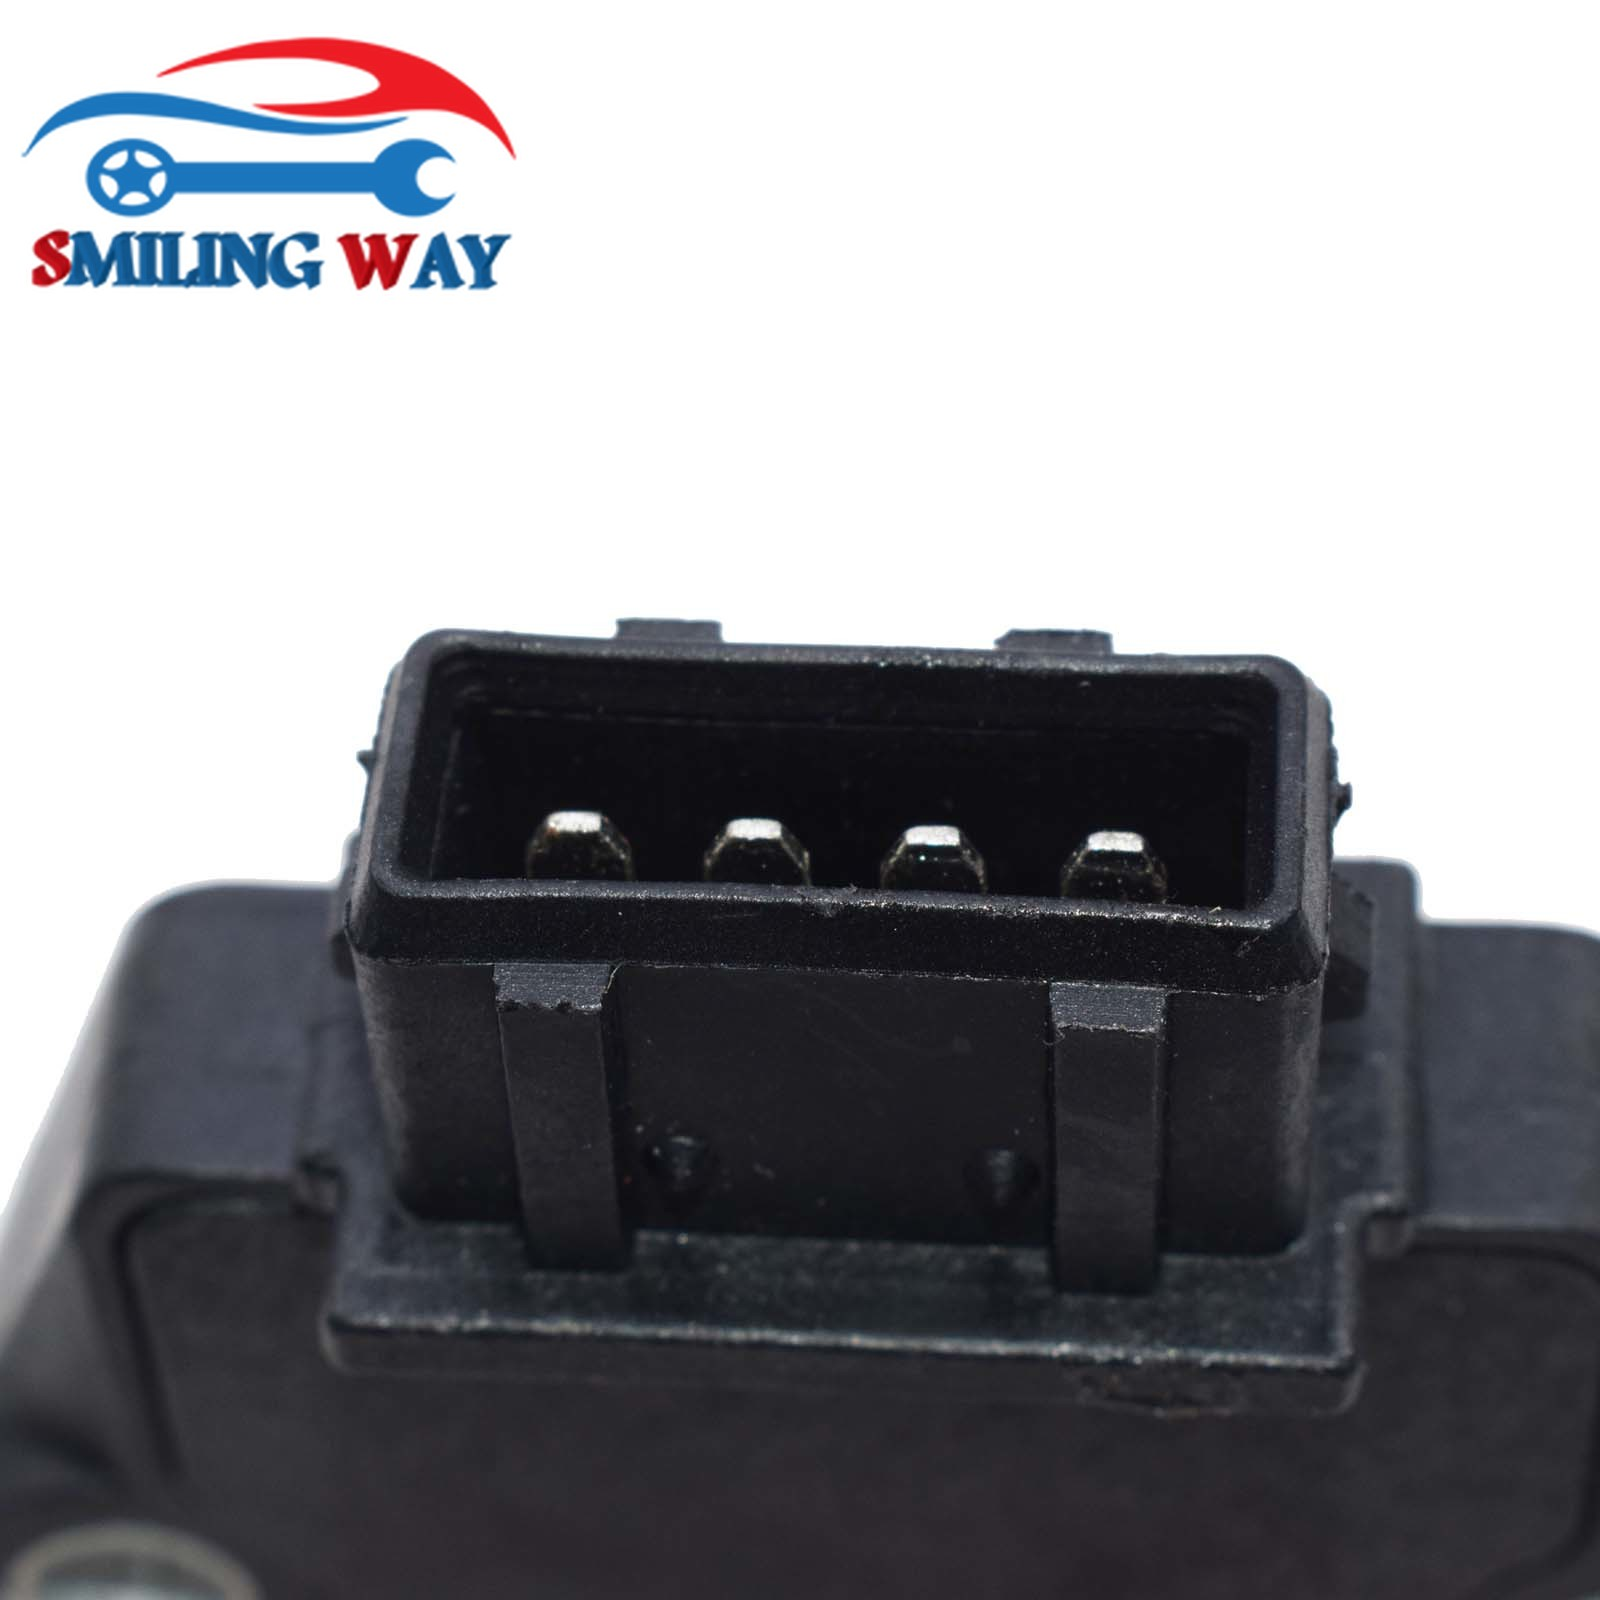 Ignition Control Module for Audi Compatible with ICM ICU 4A0905351A 0227100209